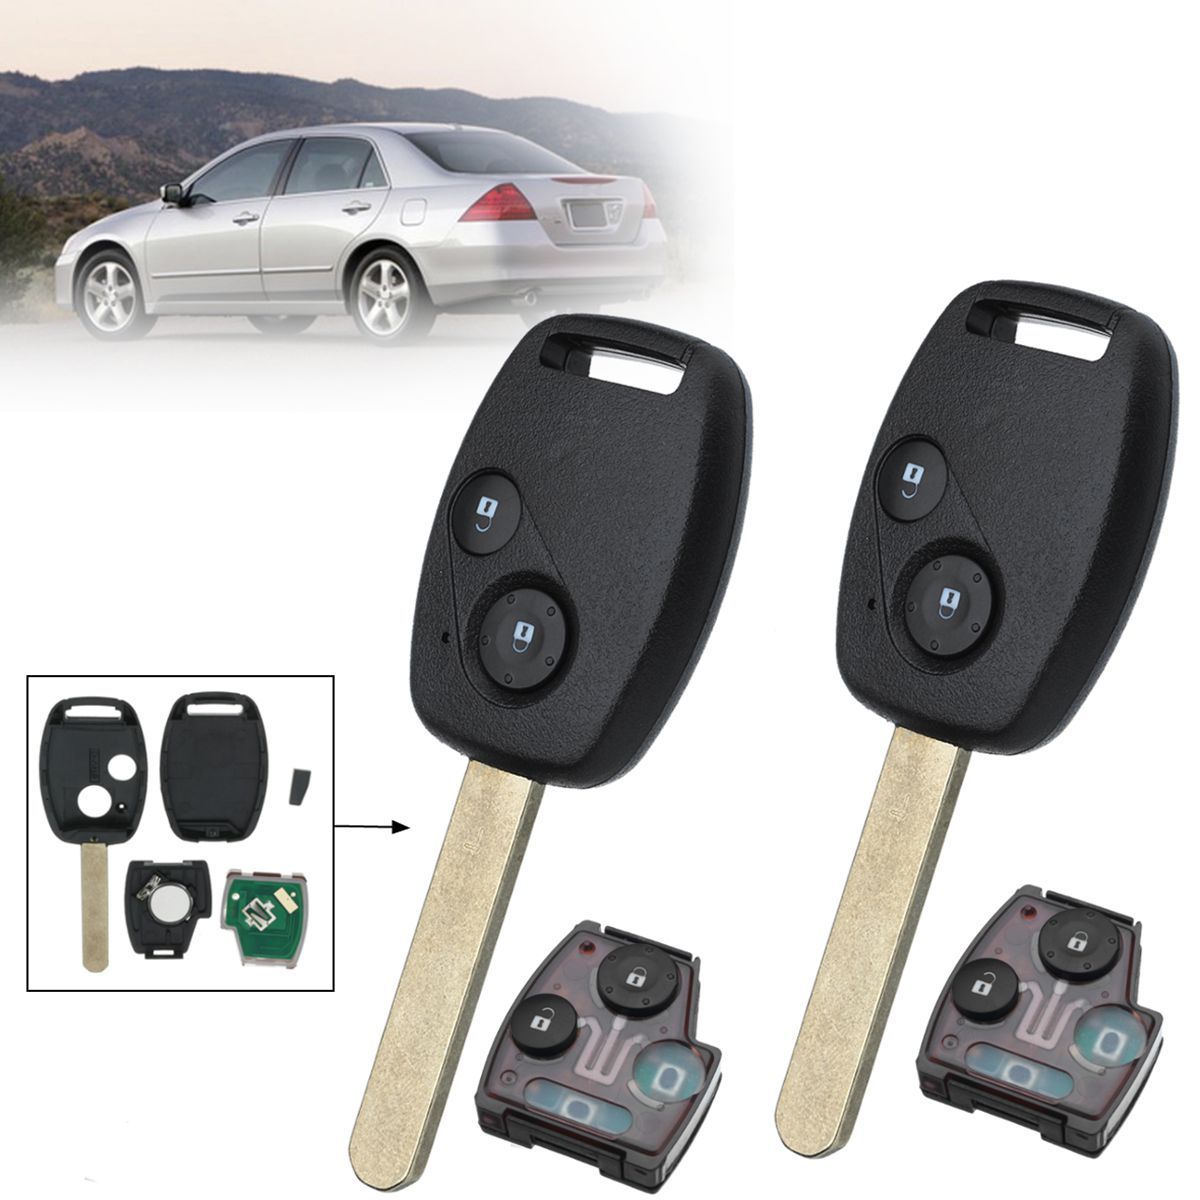 2Pcs 2 Buttons 313.8Mhz HON66 Car Remote Key Fob Case Shell with ID46 Chip For Honda/Accord/Civic Fit 2003 2004 2005 2006 2007